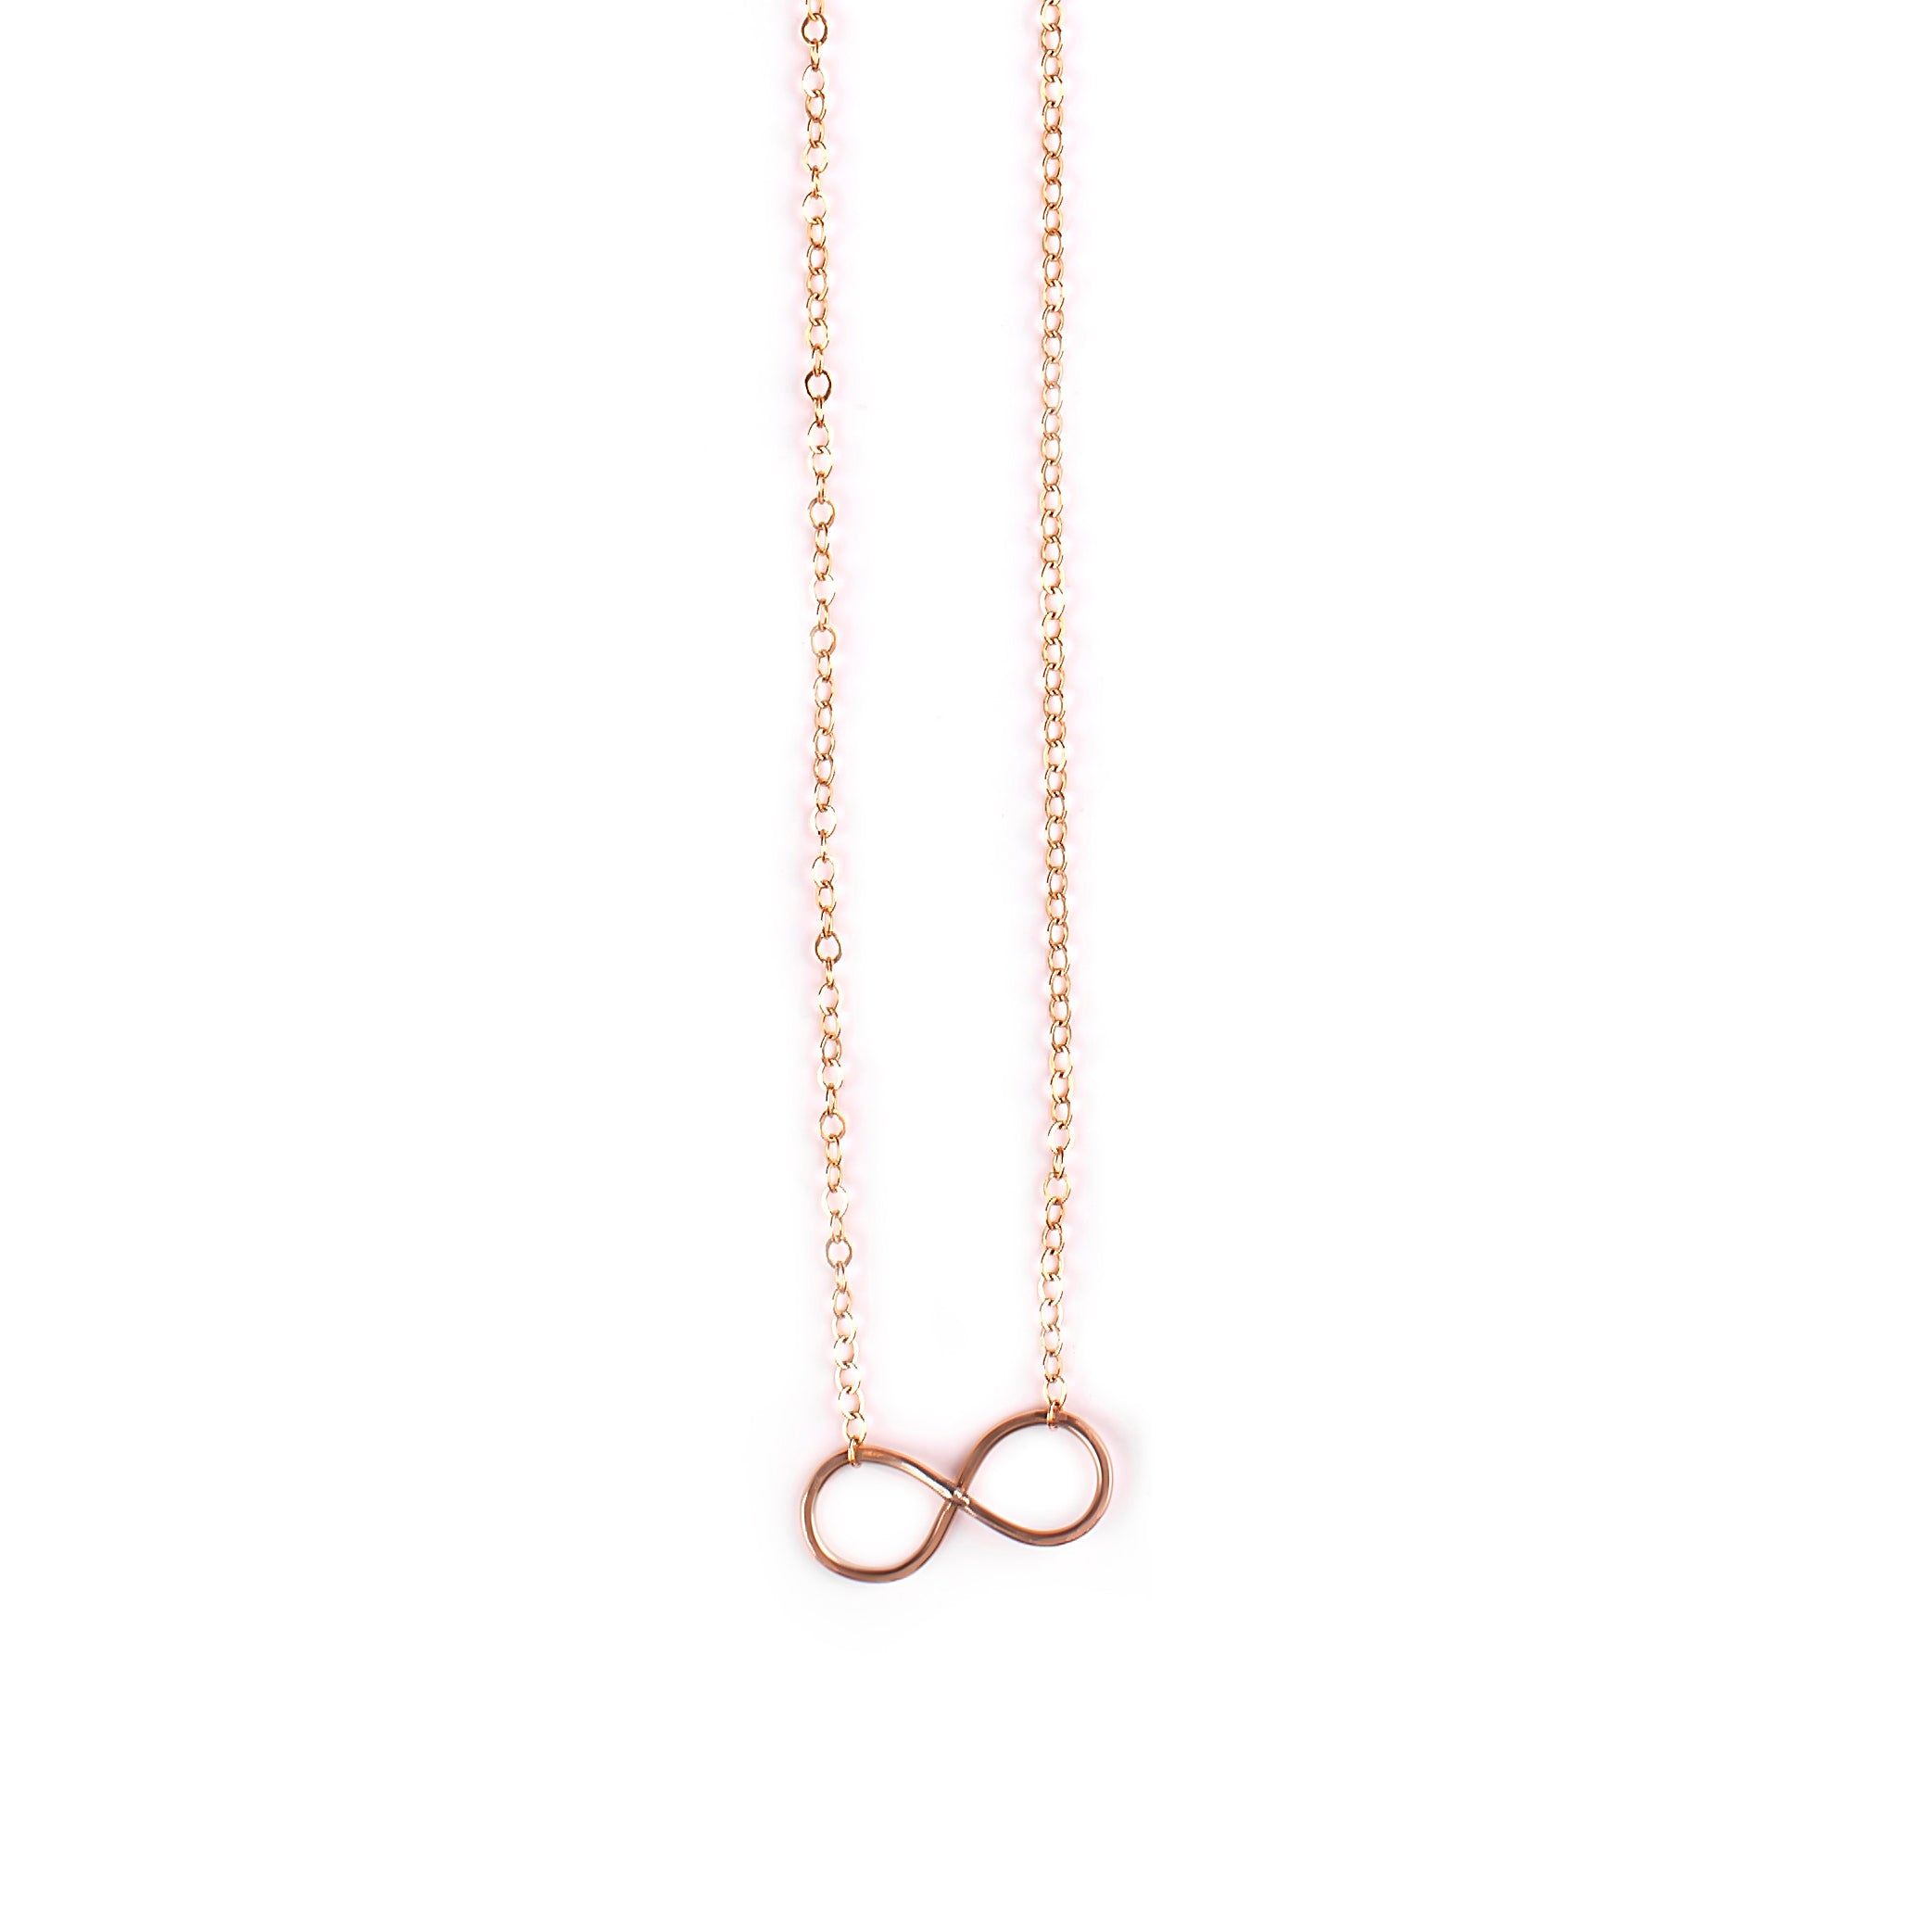 Goldfilled / black silver necklace with Infinity / heart pendant